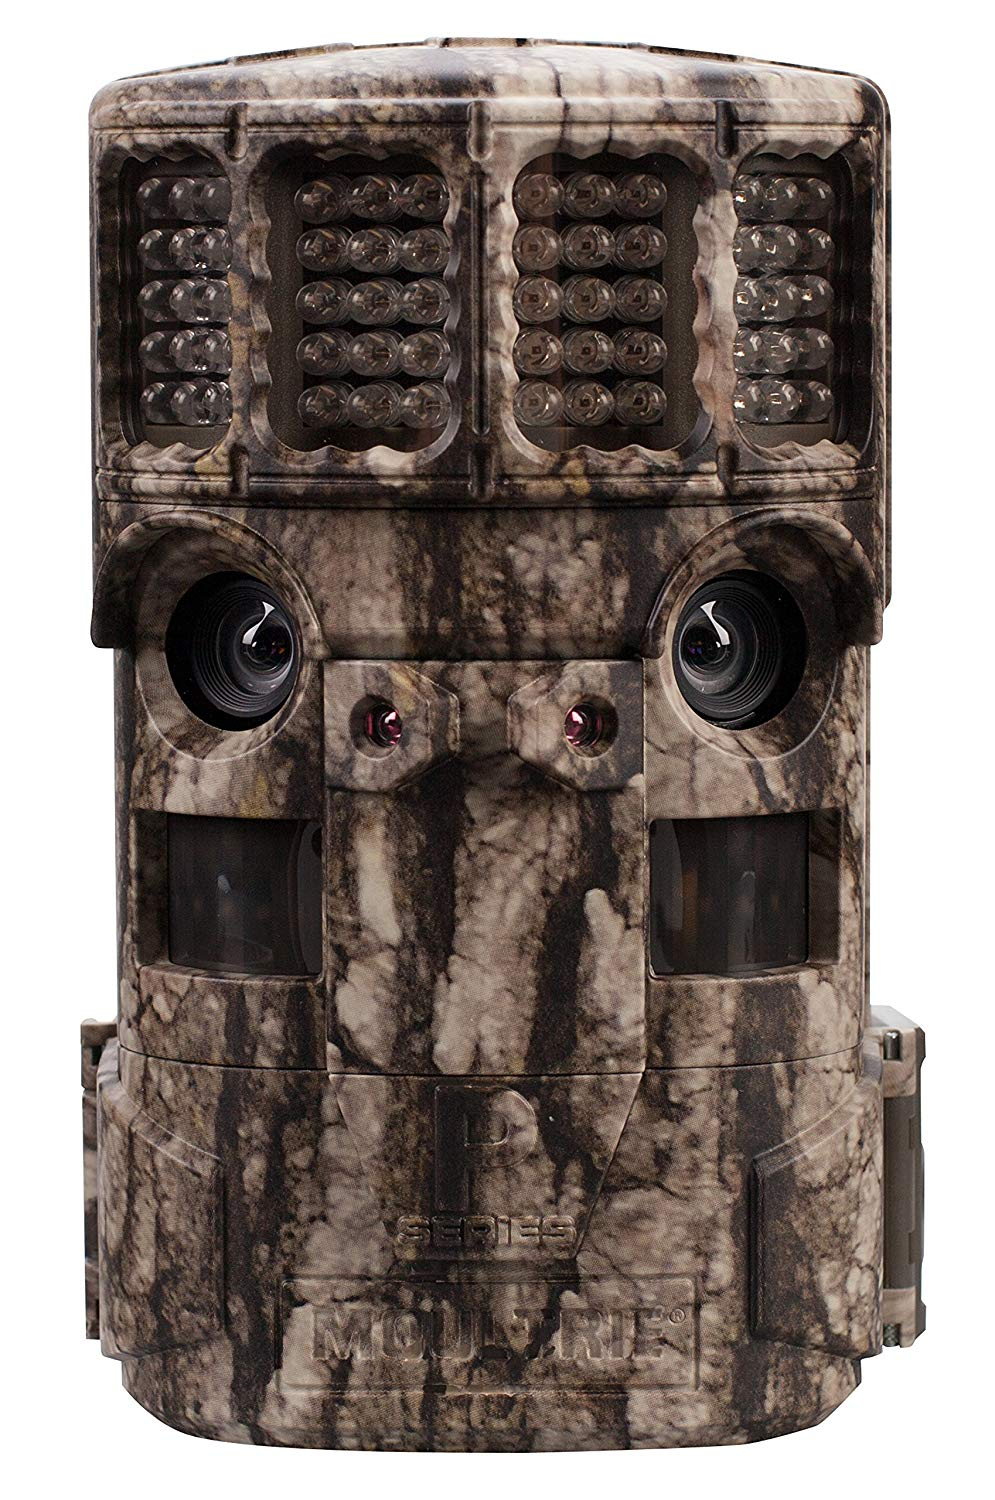 Moultrie P-Series Game Camera